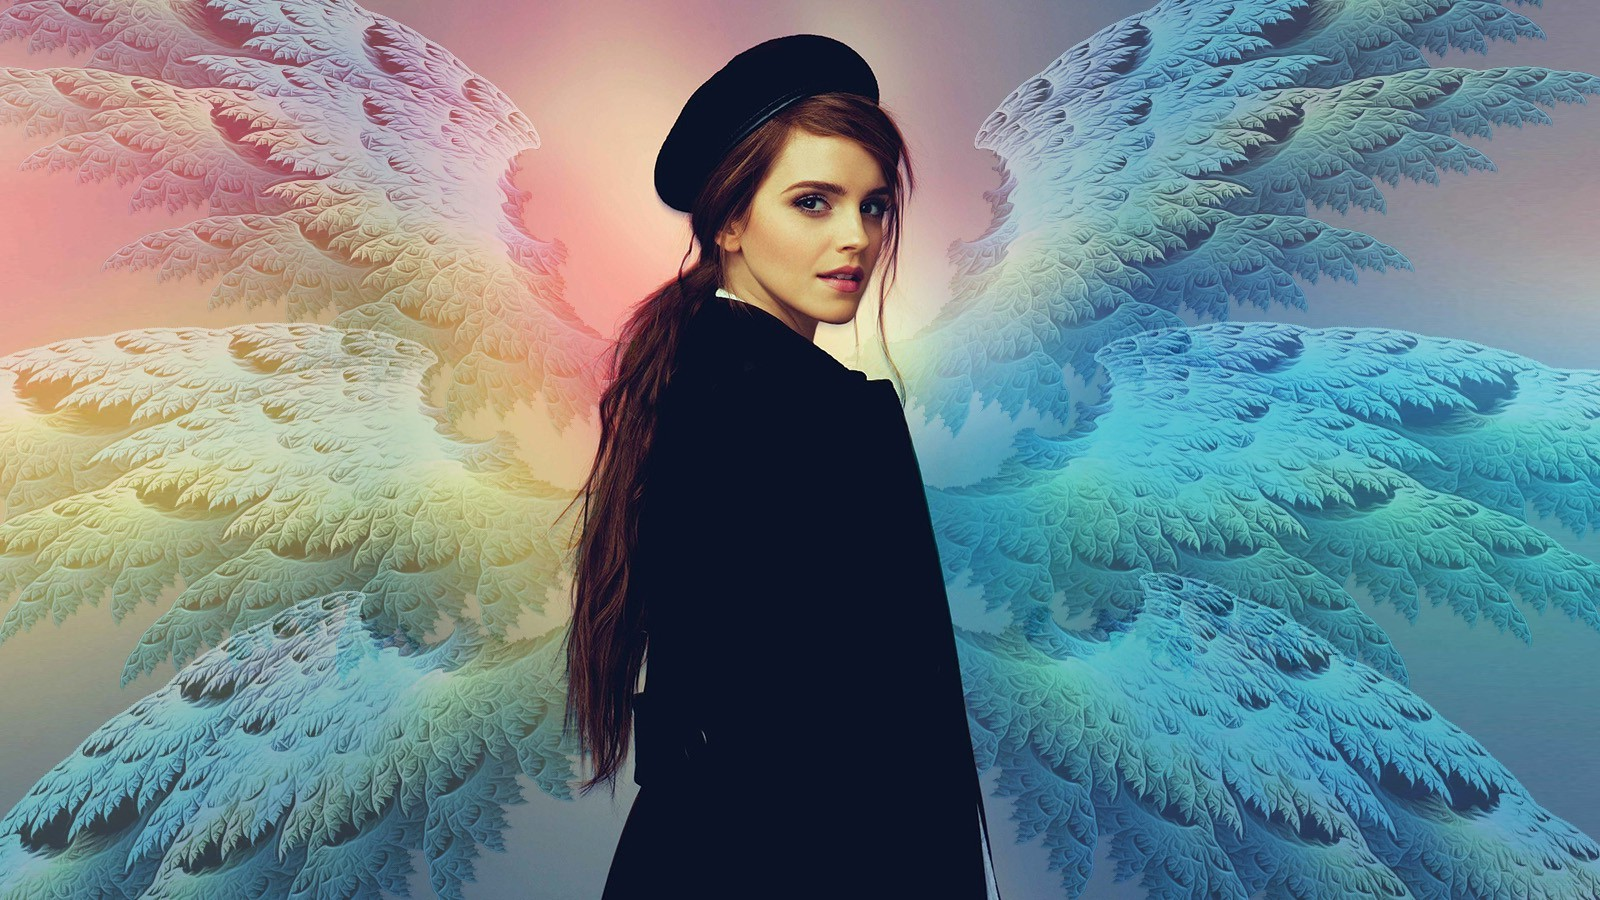 Hermione Granger Quotes Wallpapers Emma Watson Wings Harry Potter Hermione Granger